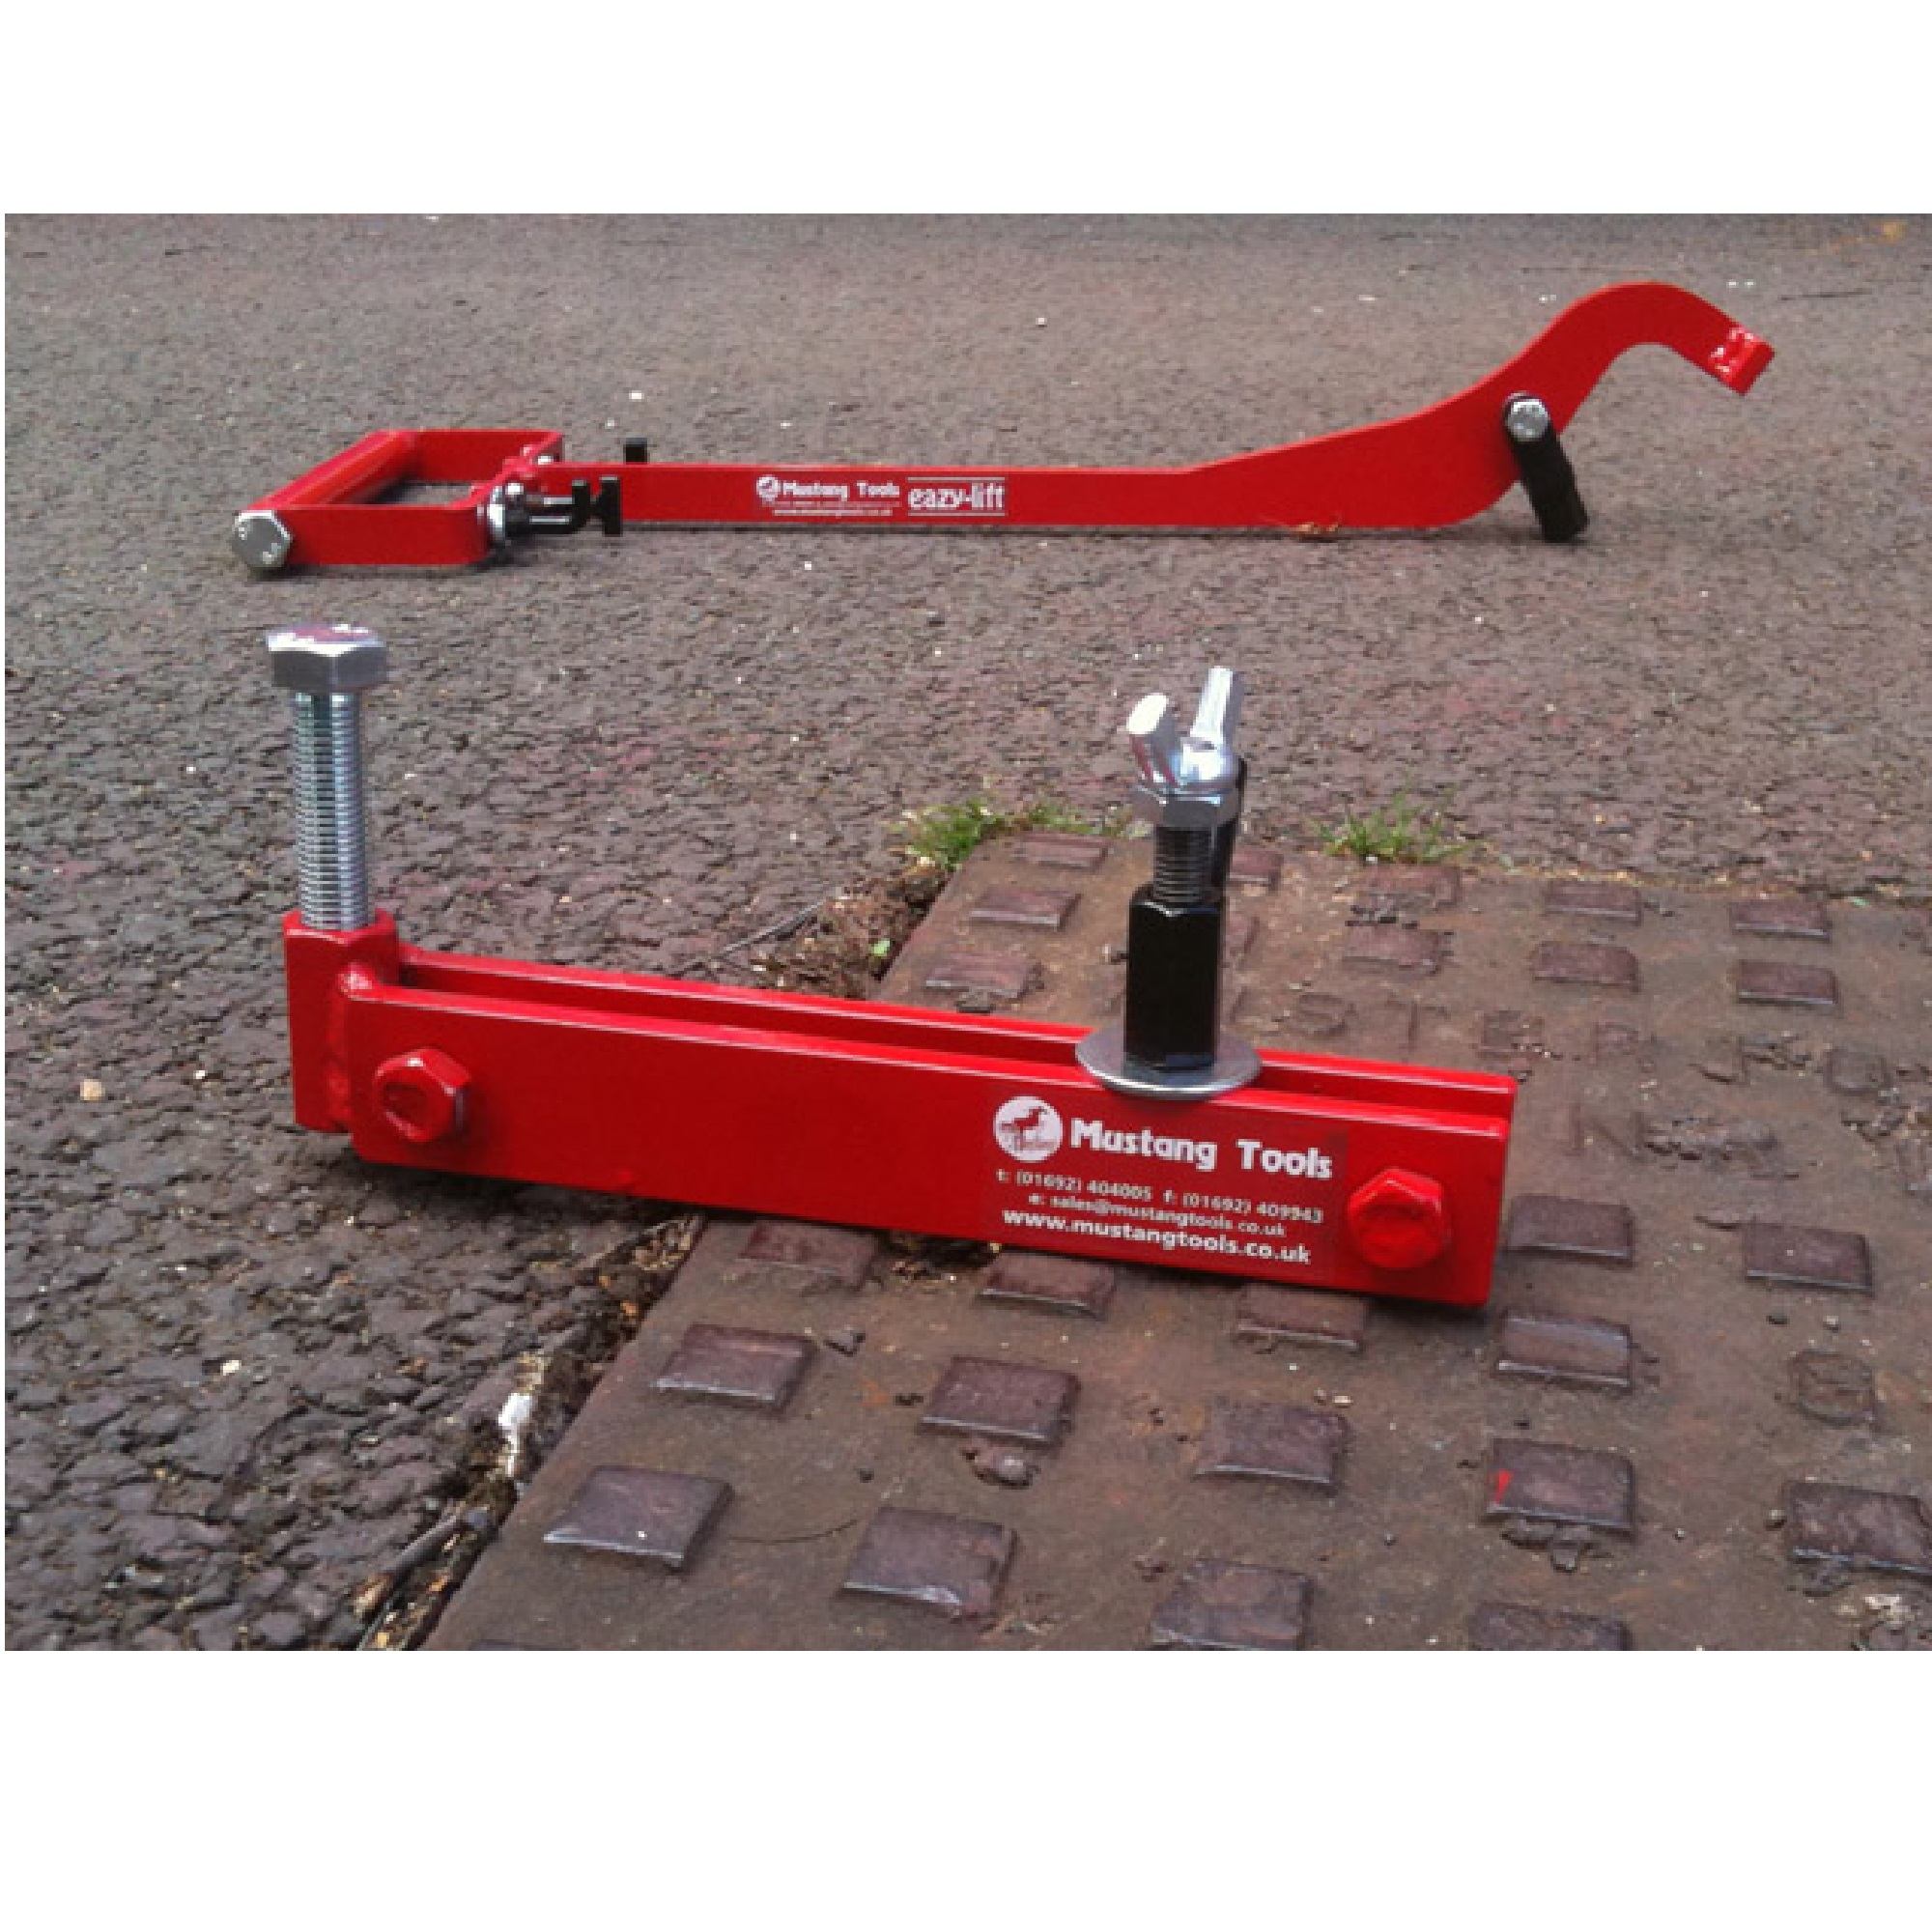 Red steel Mustang mini seal breaker on a manhole cover with the Mustang eazy lift in the background